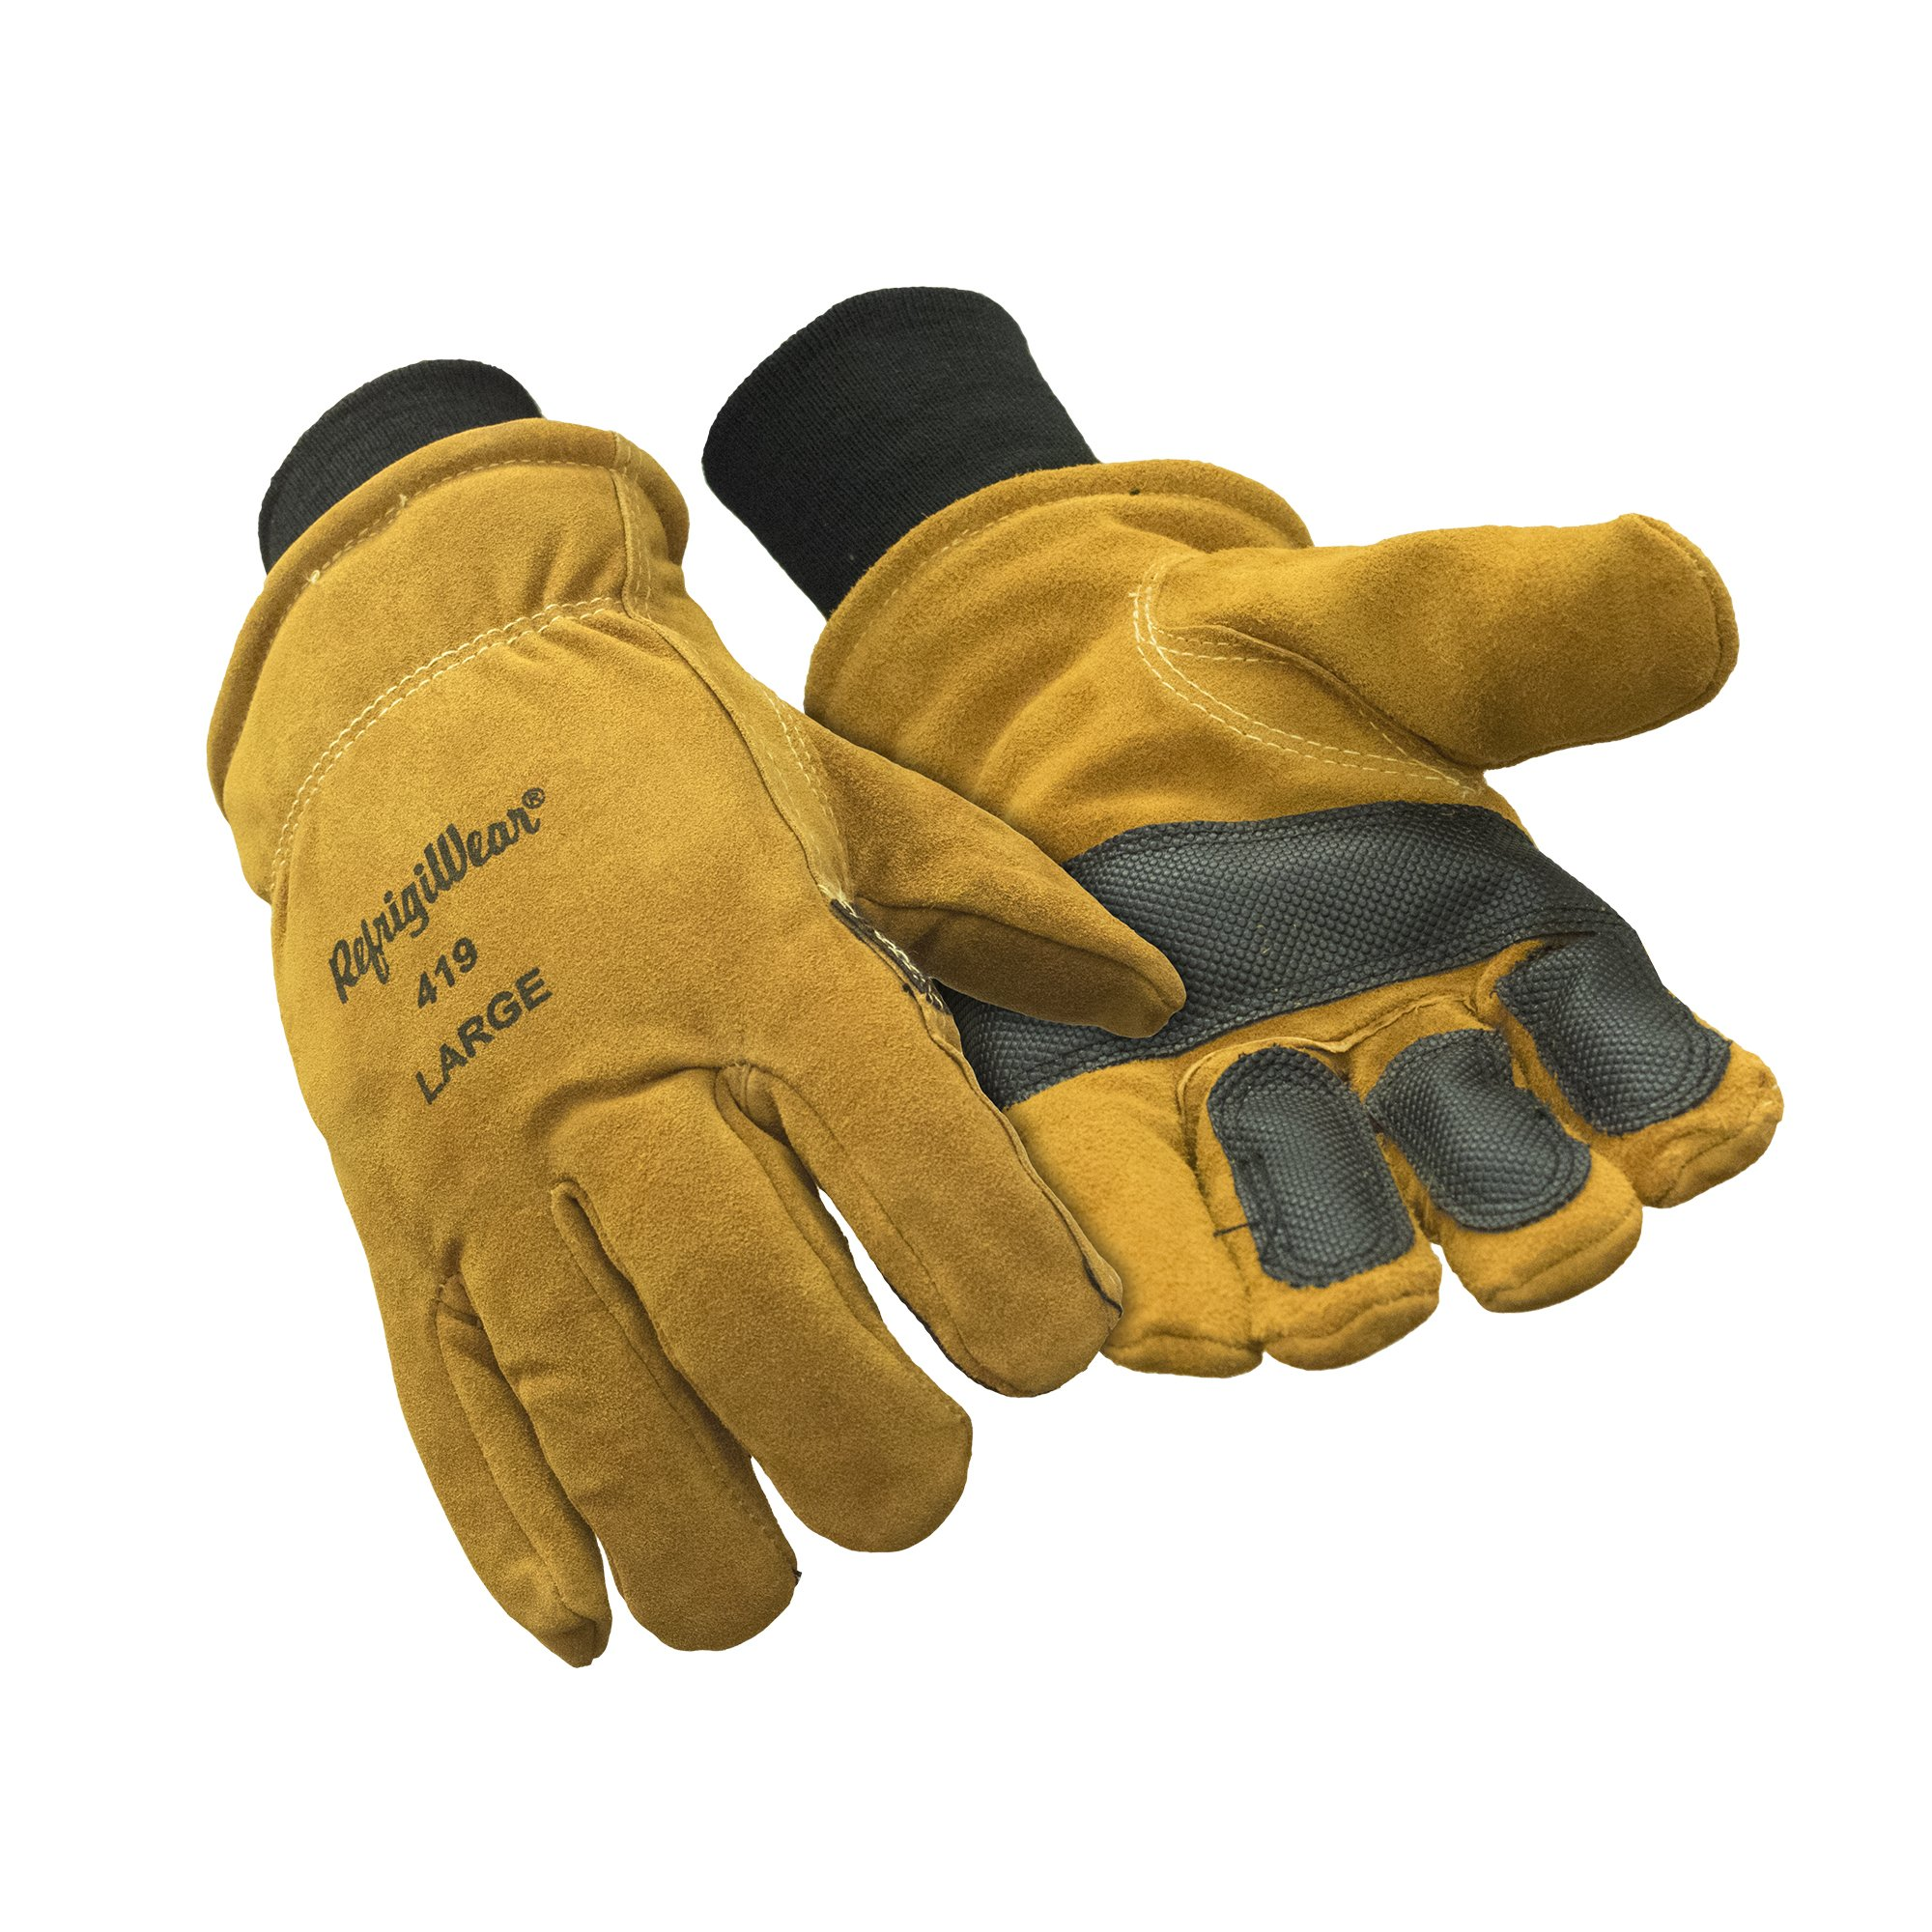 RefrigiWear Warm Double Insulated Cowhide Leather Work Gloves with Abrasion Pads (Gold, X-Large) by RefrigiWear